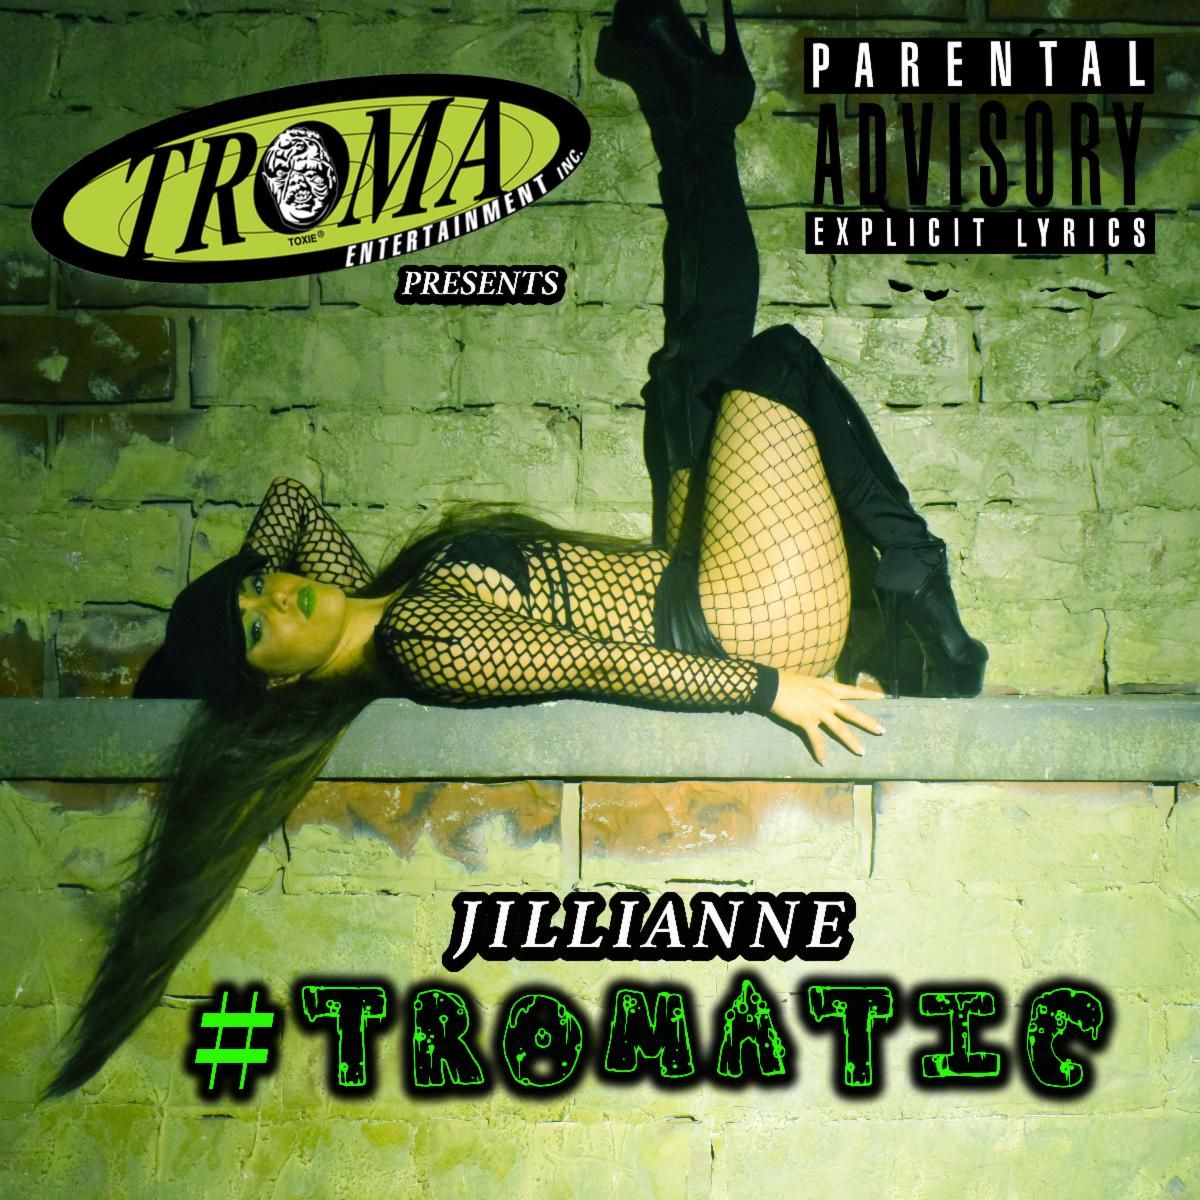 Pop Star JILLIANNE to Release Official Music Video for FanTOXIC Hit Single, #Tromatic, From Director Lloyd Kaufman's Latest TROMAsterpiece, Shakespeare's Shitstorm!